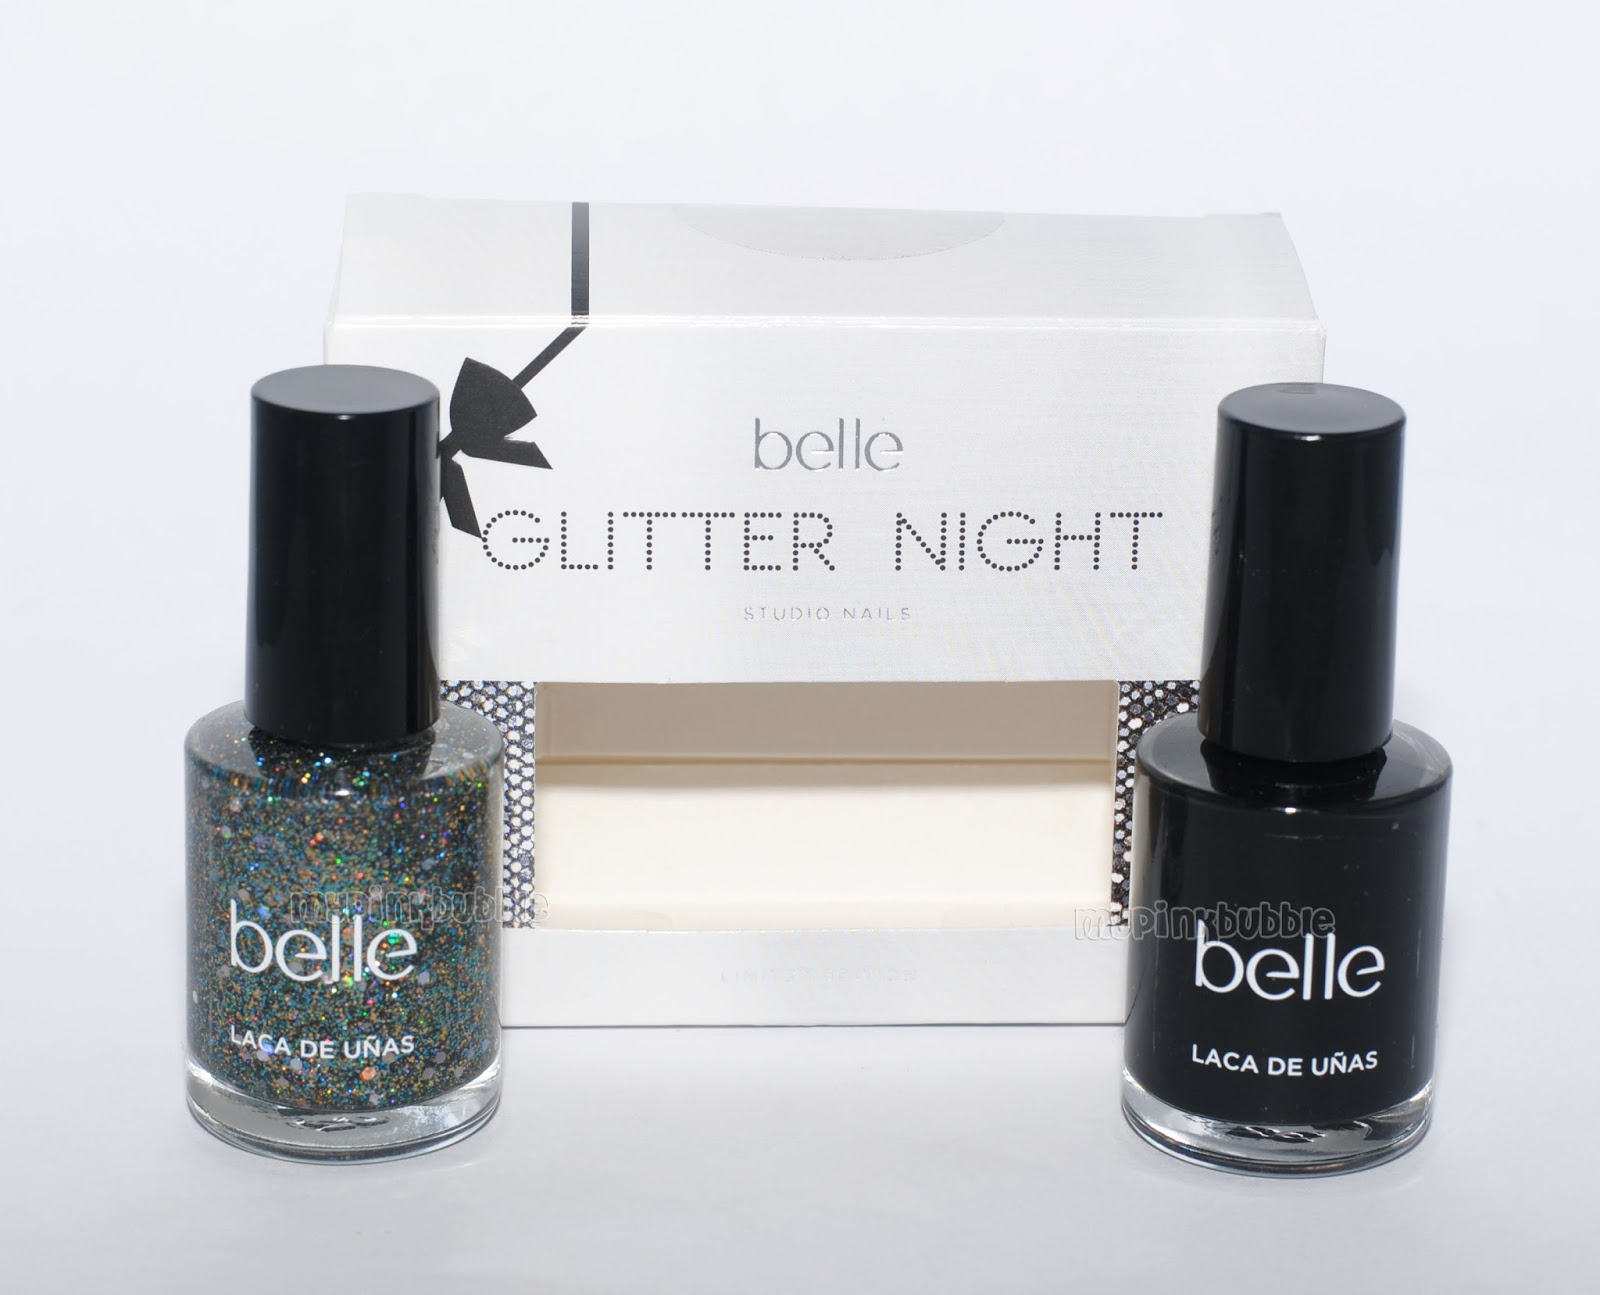 Belle Glitter night